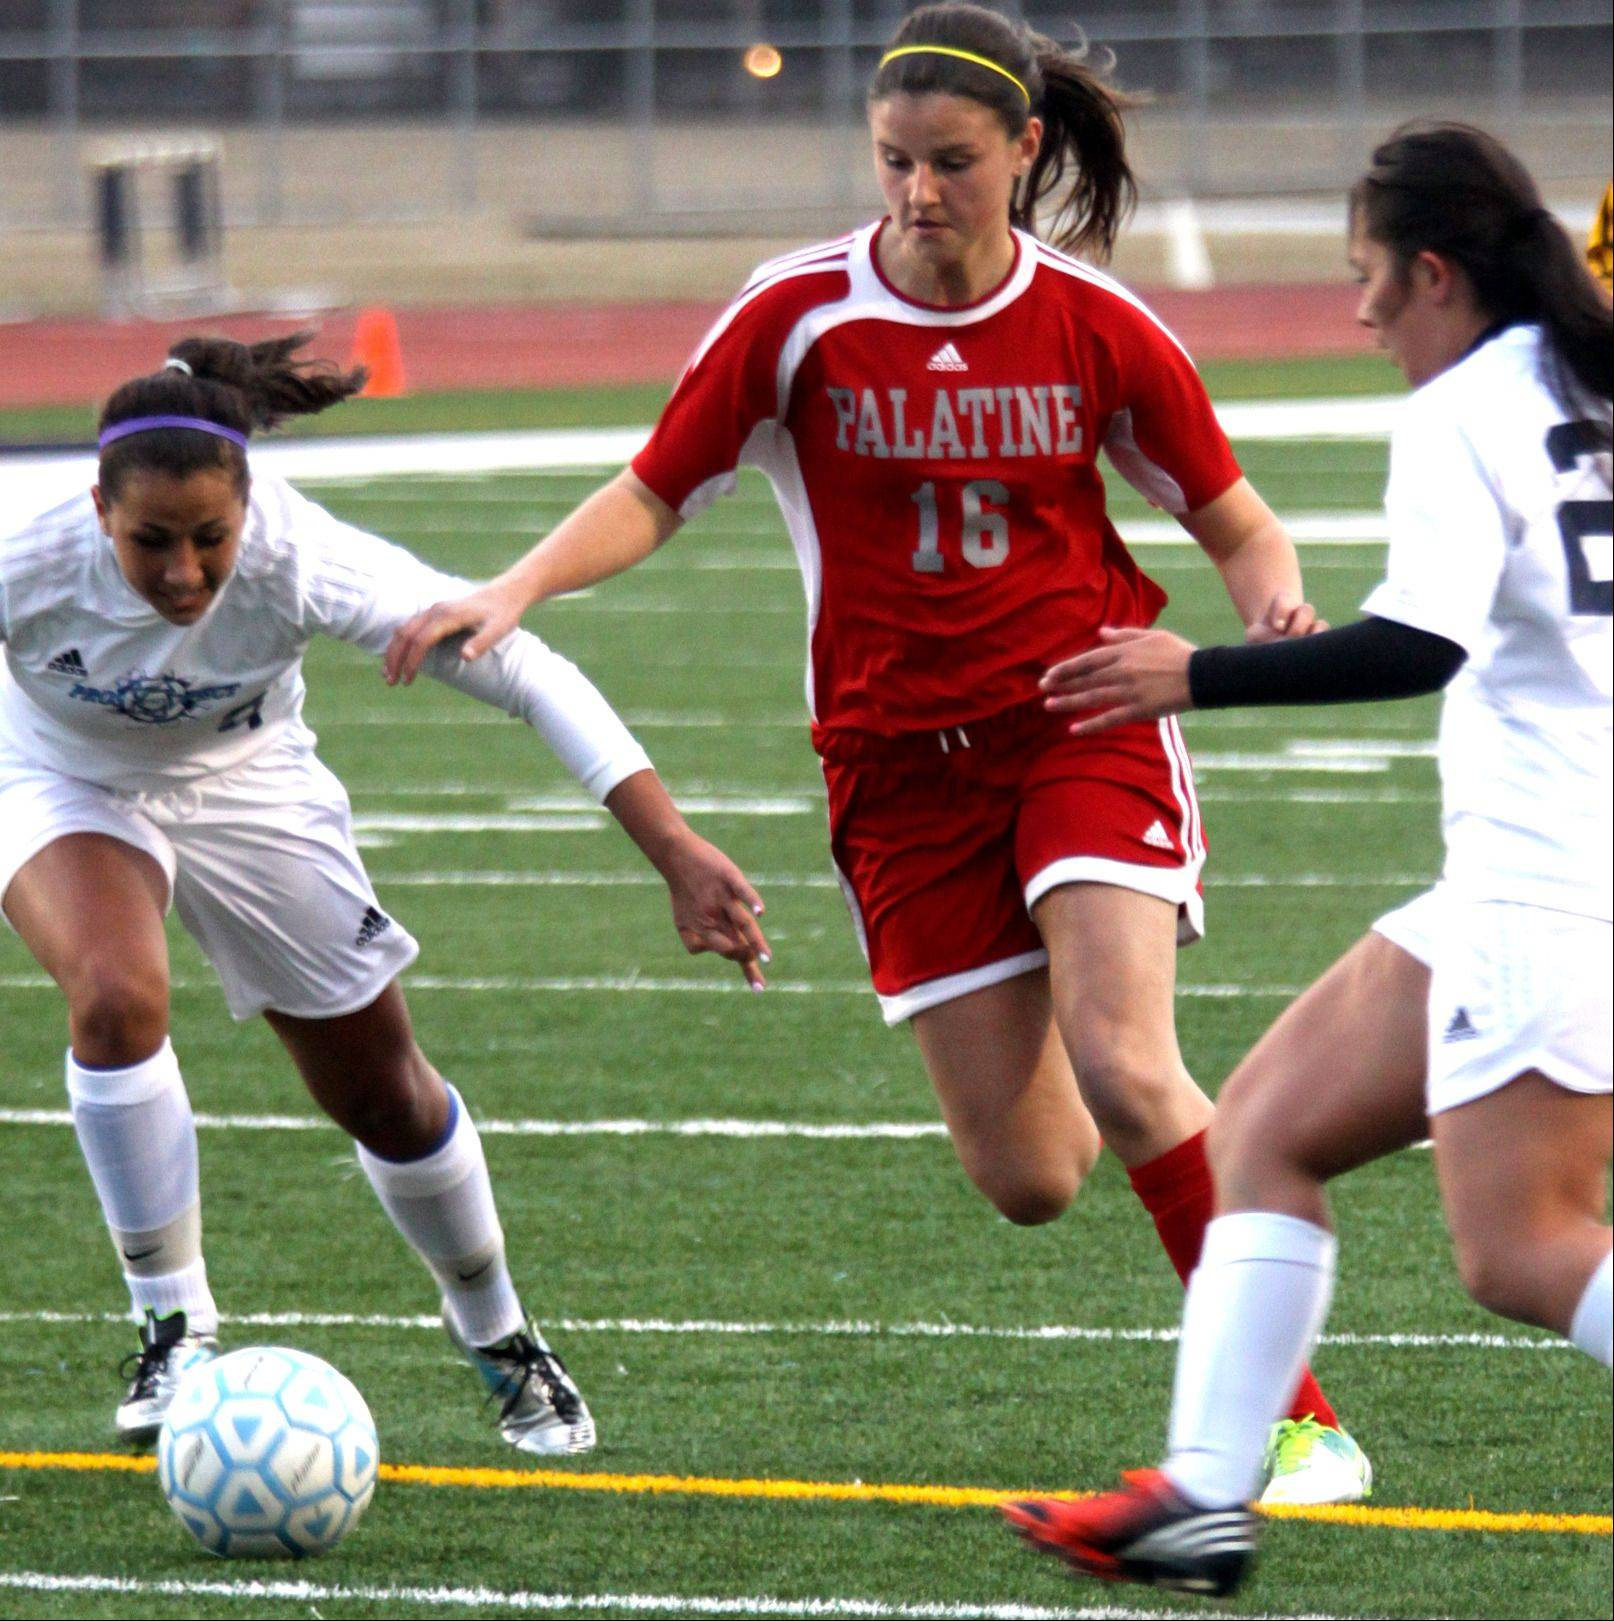 Prospect's Kristen Frasco, left, and Elena Cukurs, right, close in on Palatine's Erin Mayer, center, during Thursday's game at George Gattas Memorial Stadium in Mount Prospect.